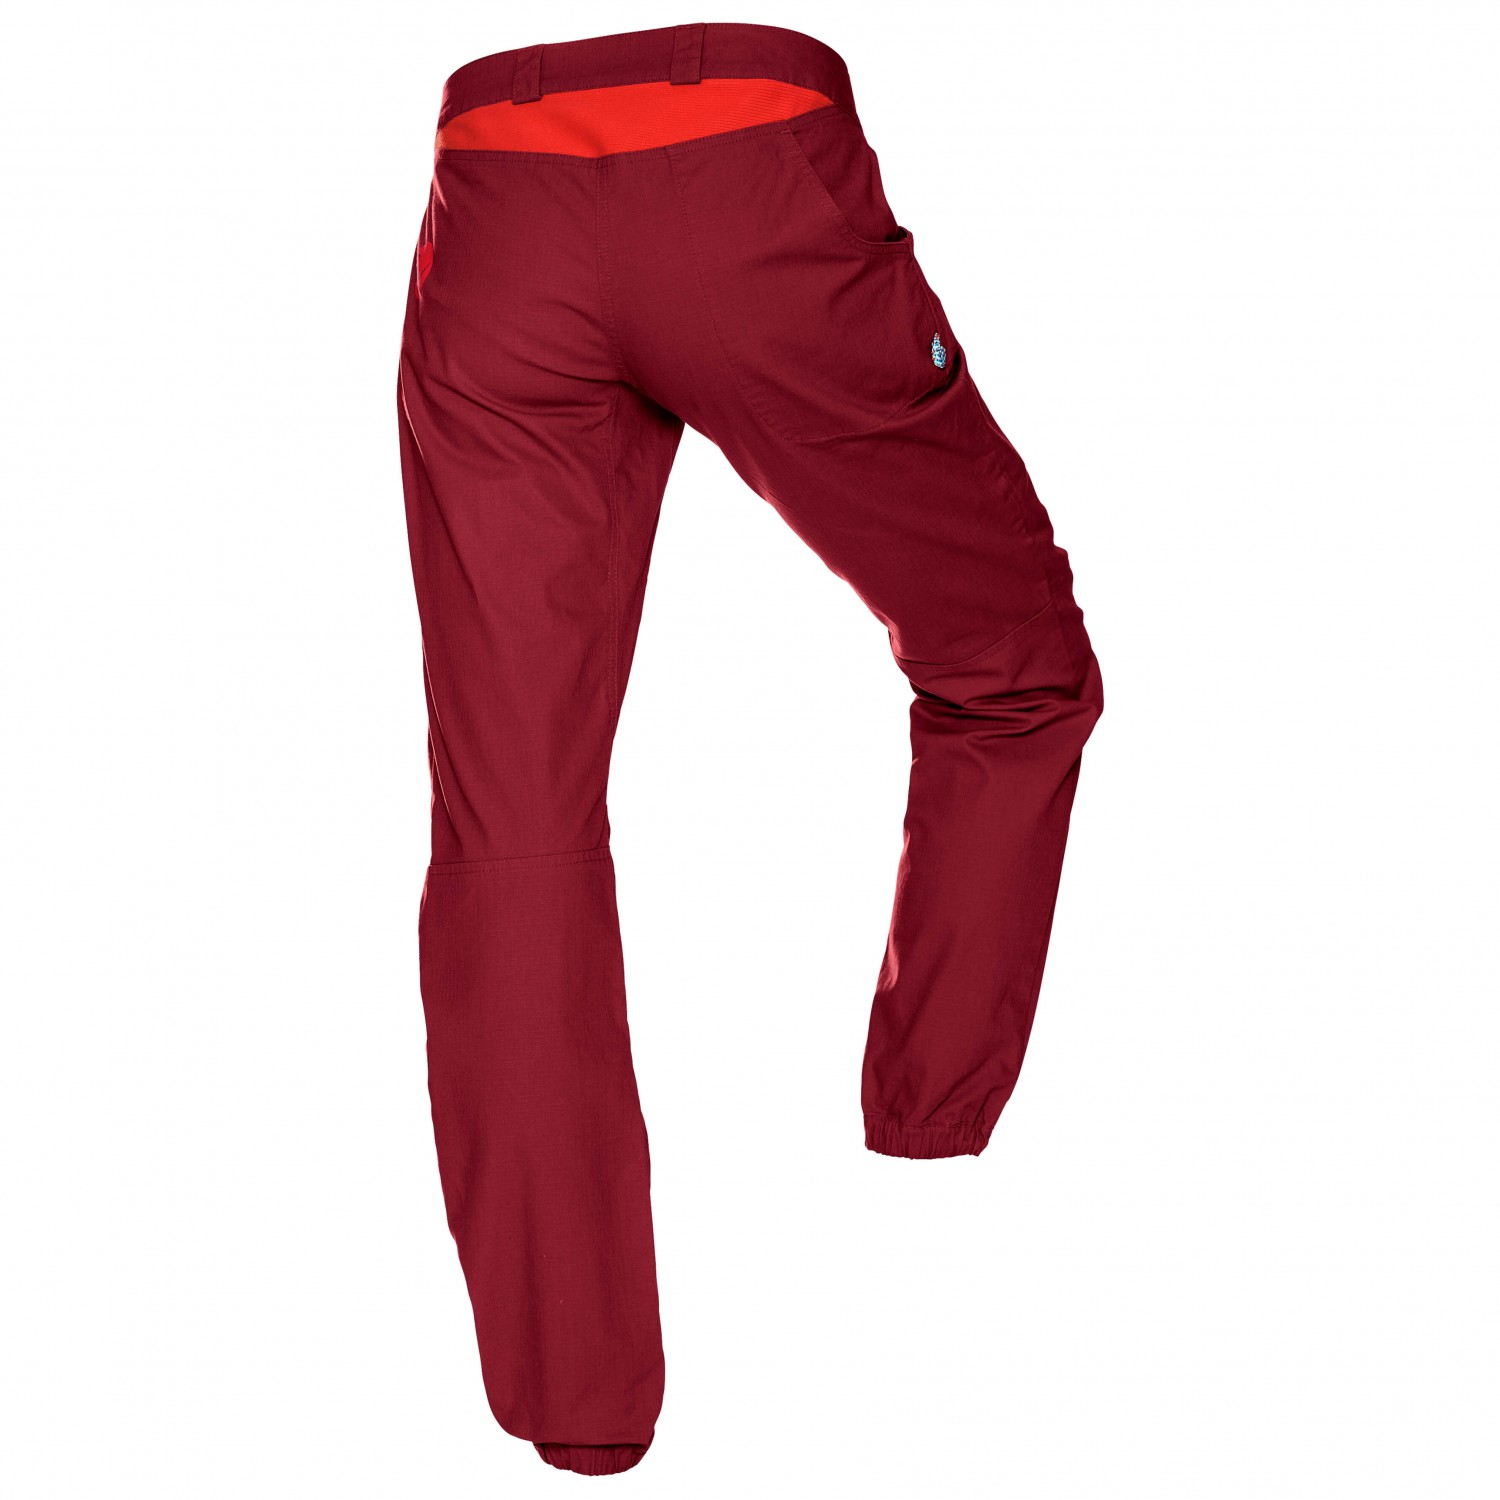 edelrid rope rider pants kletterhose damen online kaufen. Black Bedroom Furniture Sets. Home Design Ideas